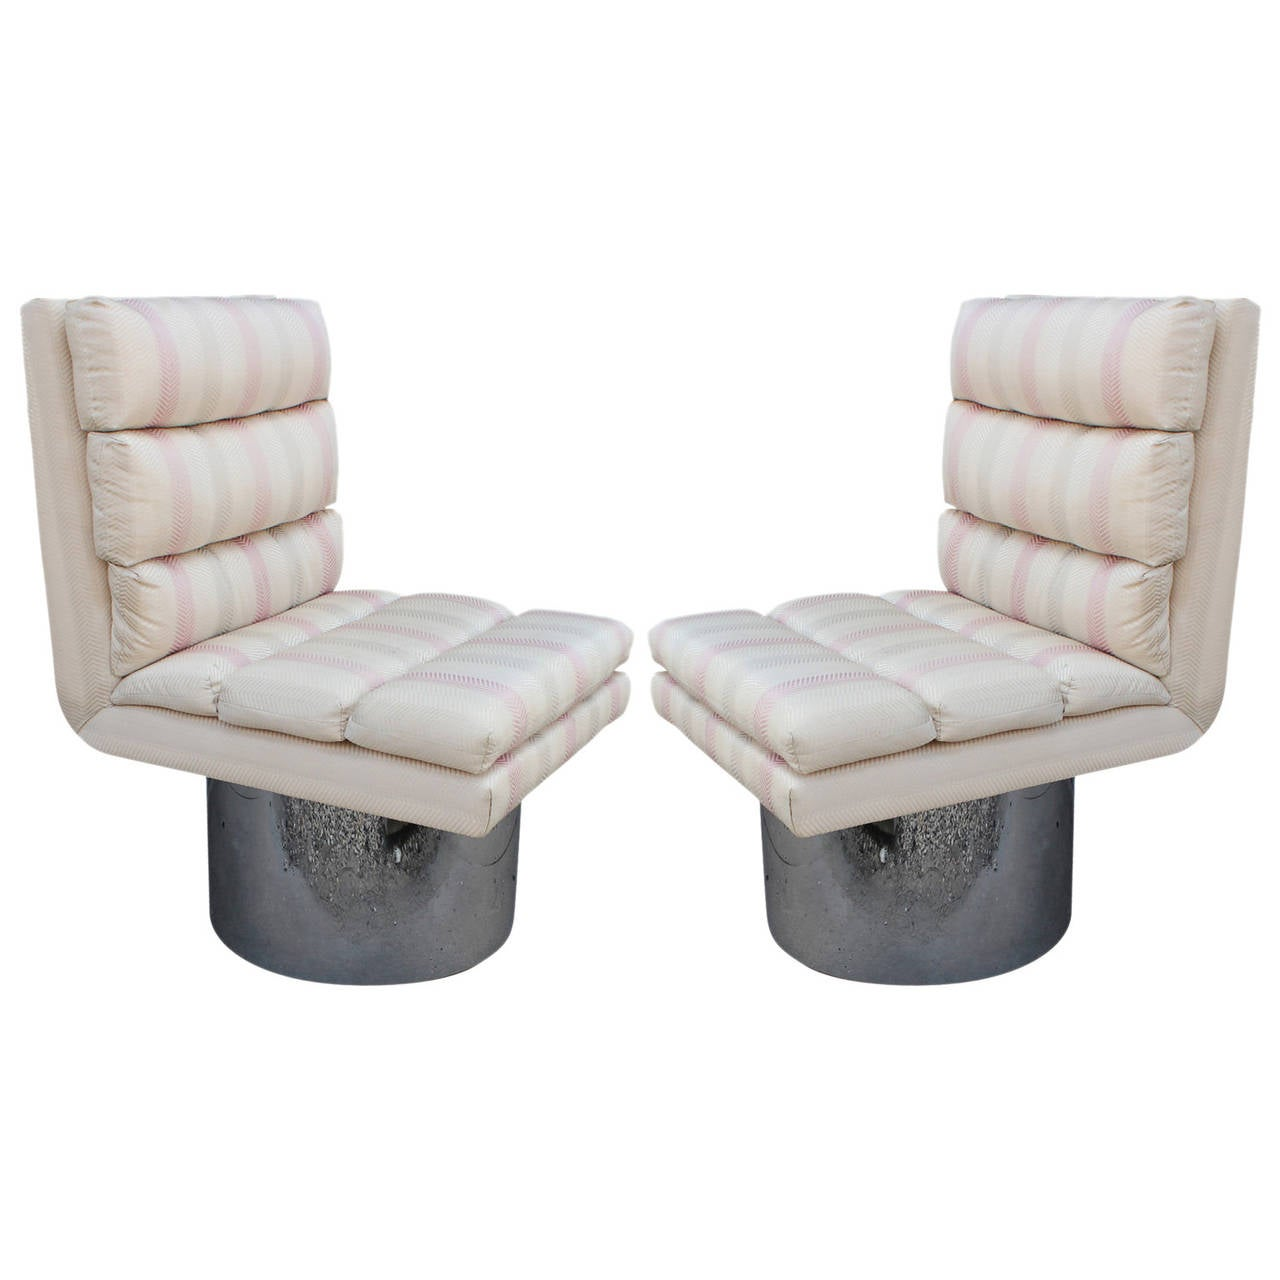 Barrel Swivel Chair Amazing Modern Swivel Lounge Chairs On Chrome Barrel Bases